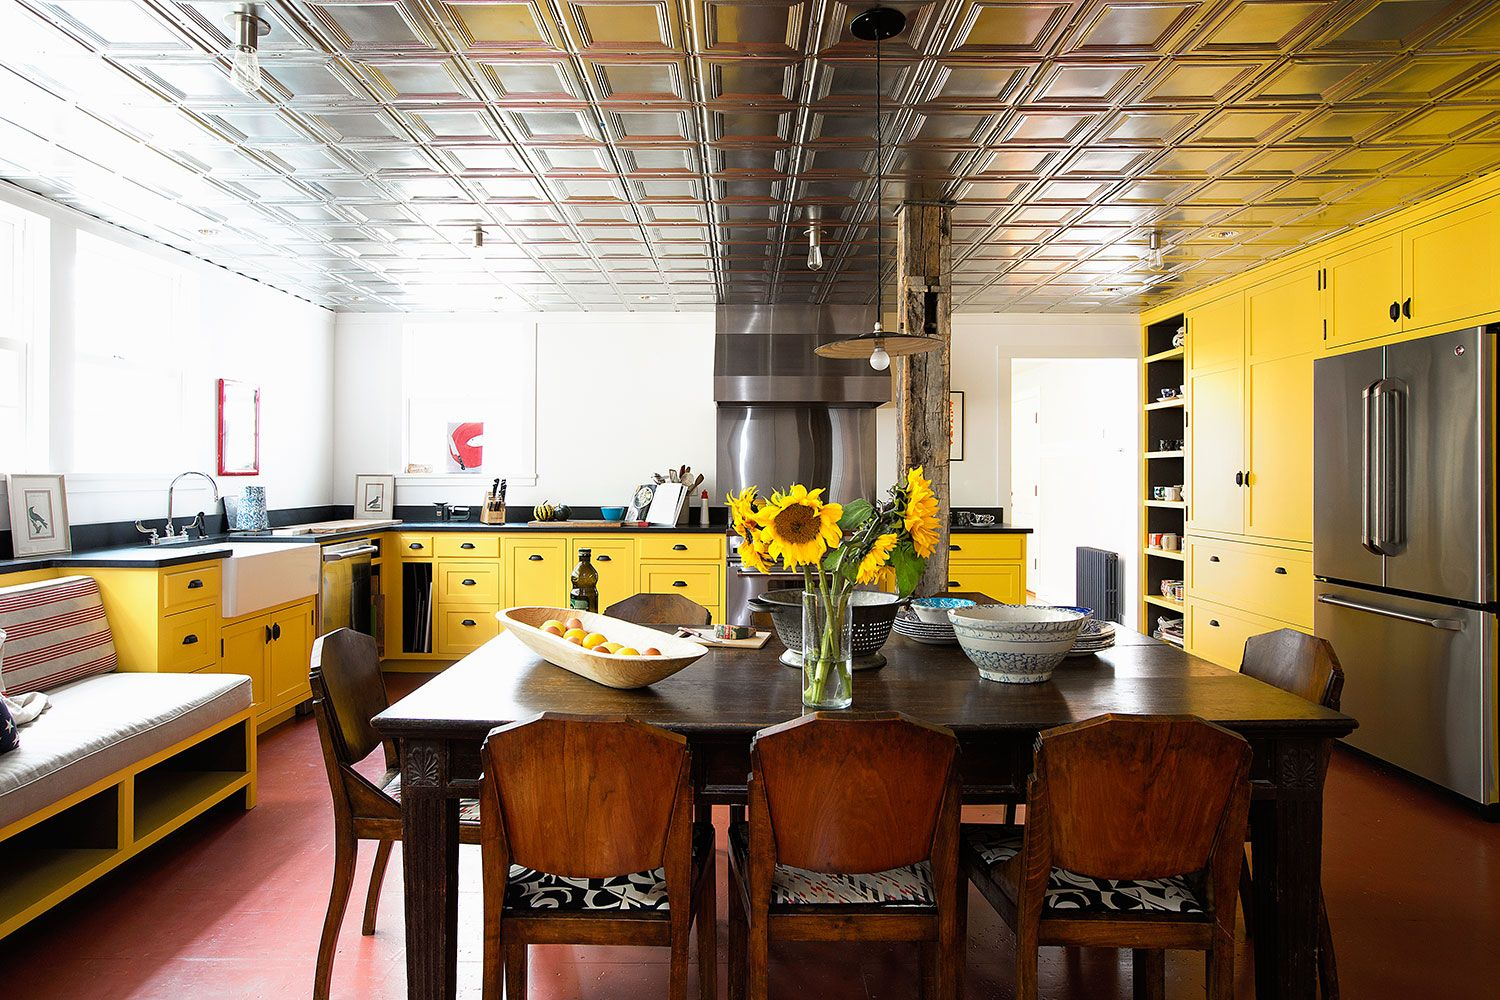 Yellow Kitchen Design Ideas 21 Yellow Kitchen Ideas Decorating Tips For Yellow Colored Kitchens